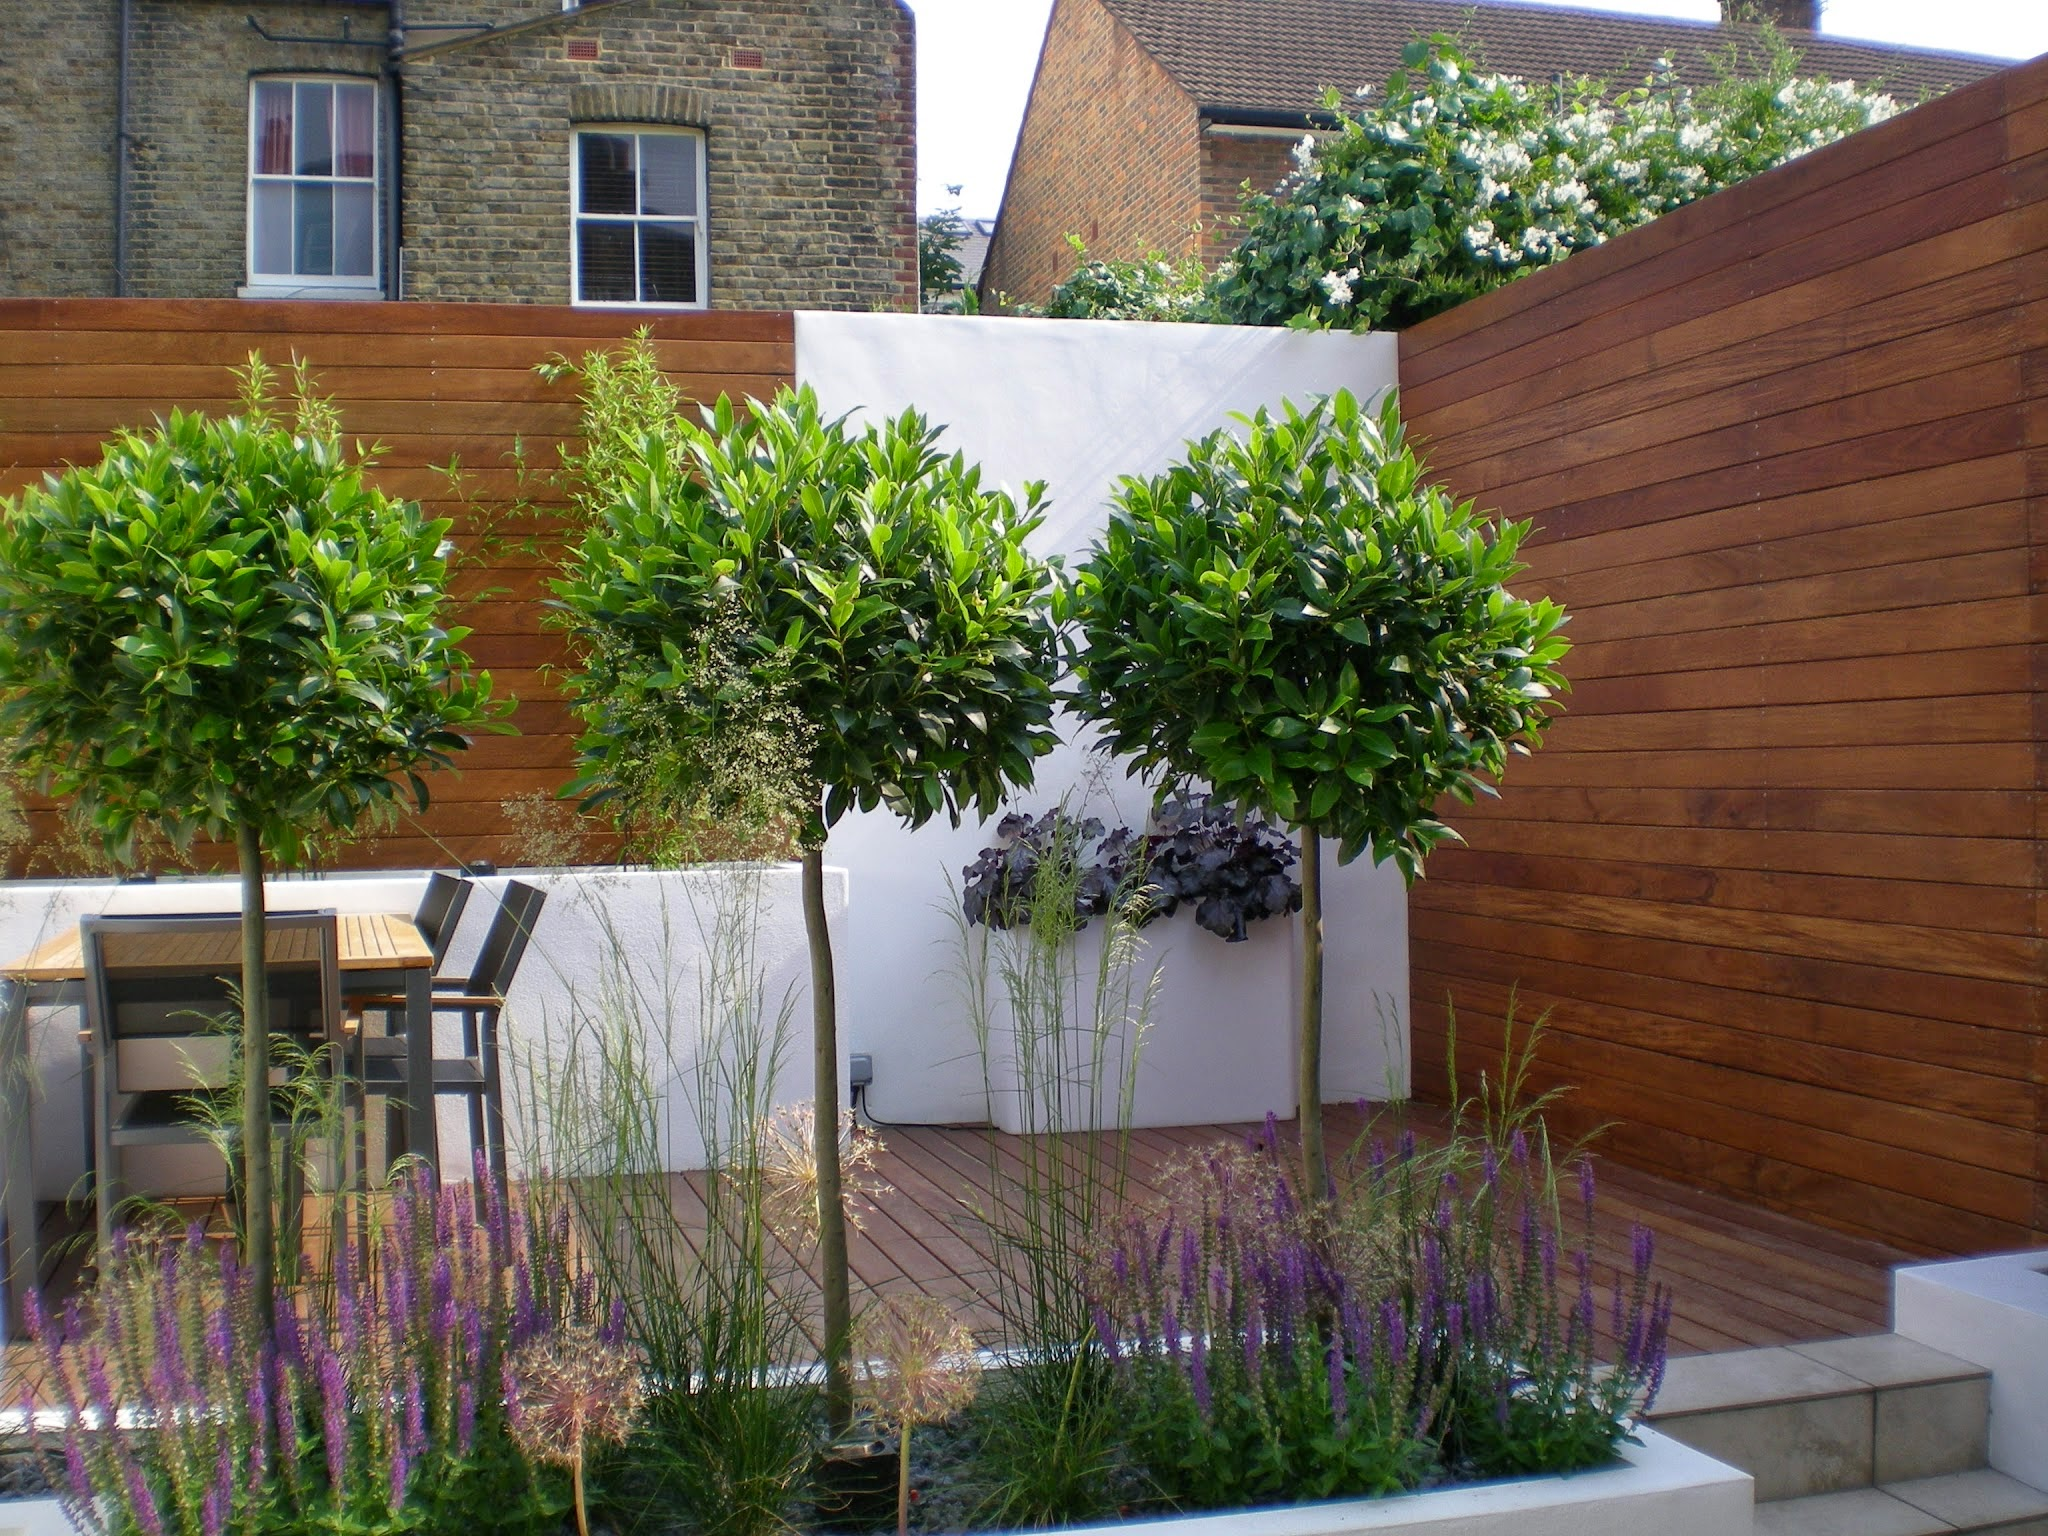 Modern Garden Design contemporary style rendered walls and raised beds The Design Materials